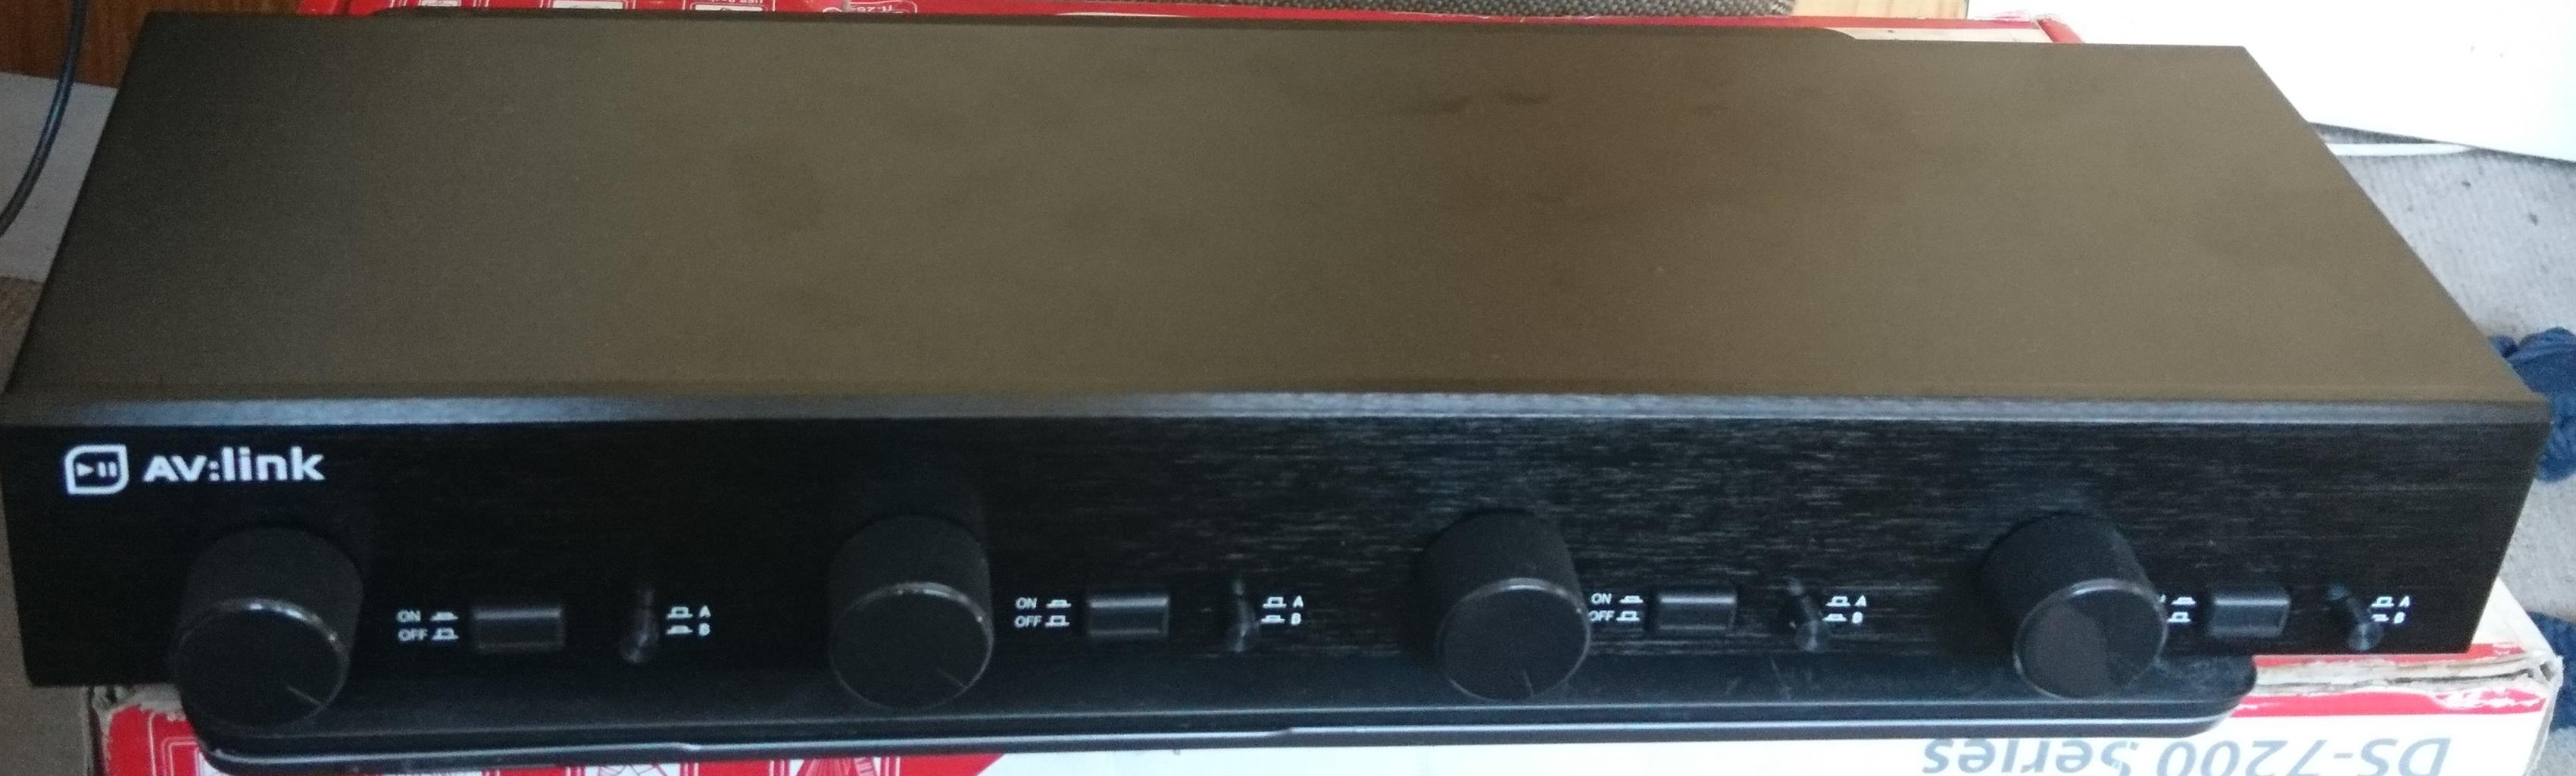 Speaker Distributor (4 Zone Out Volume Selector 2 Inputs)